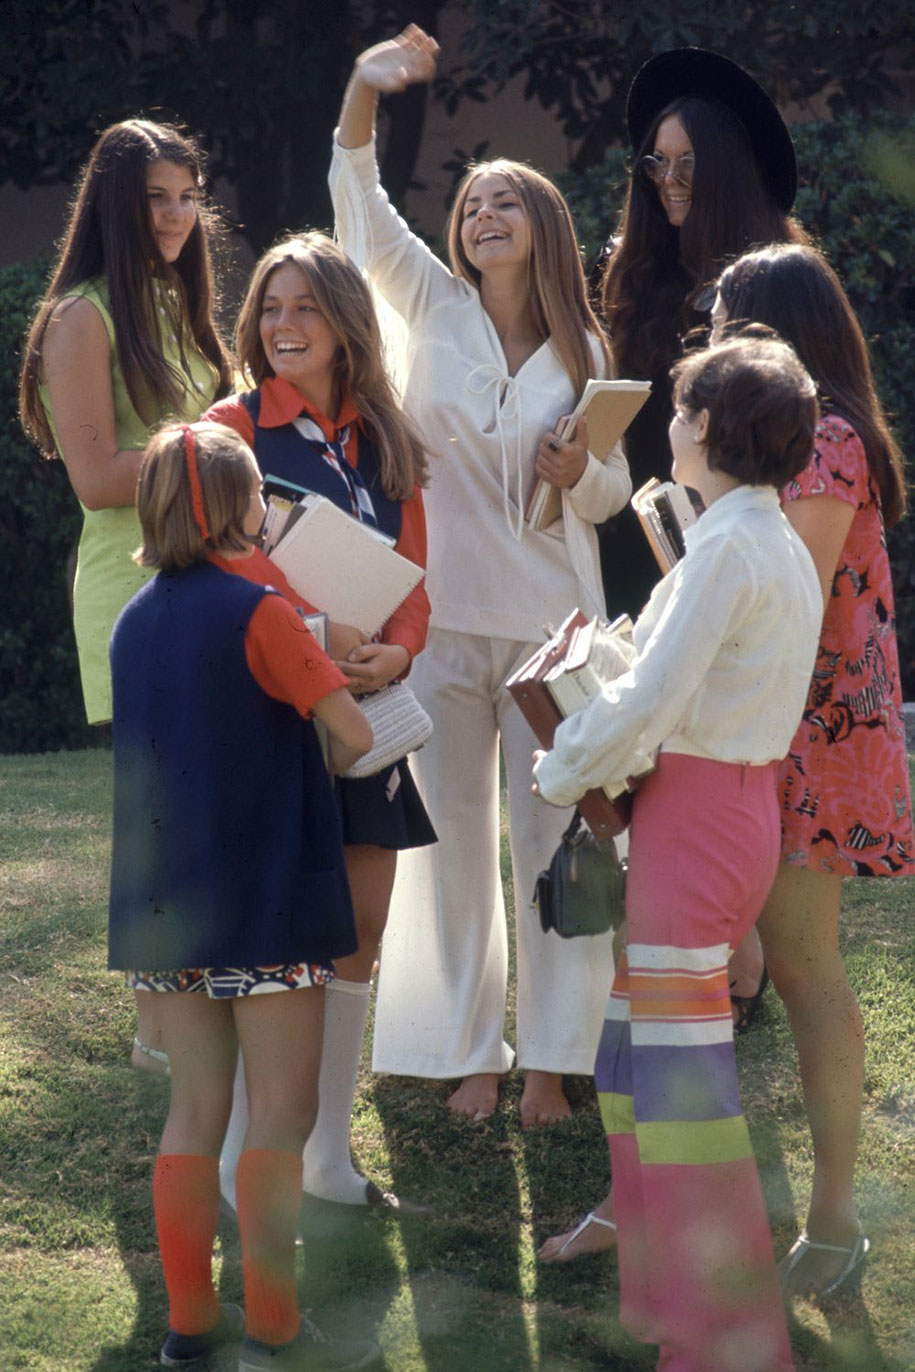 1969-hippie-high-school-counterculture-photography-11